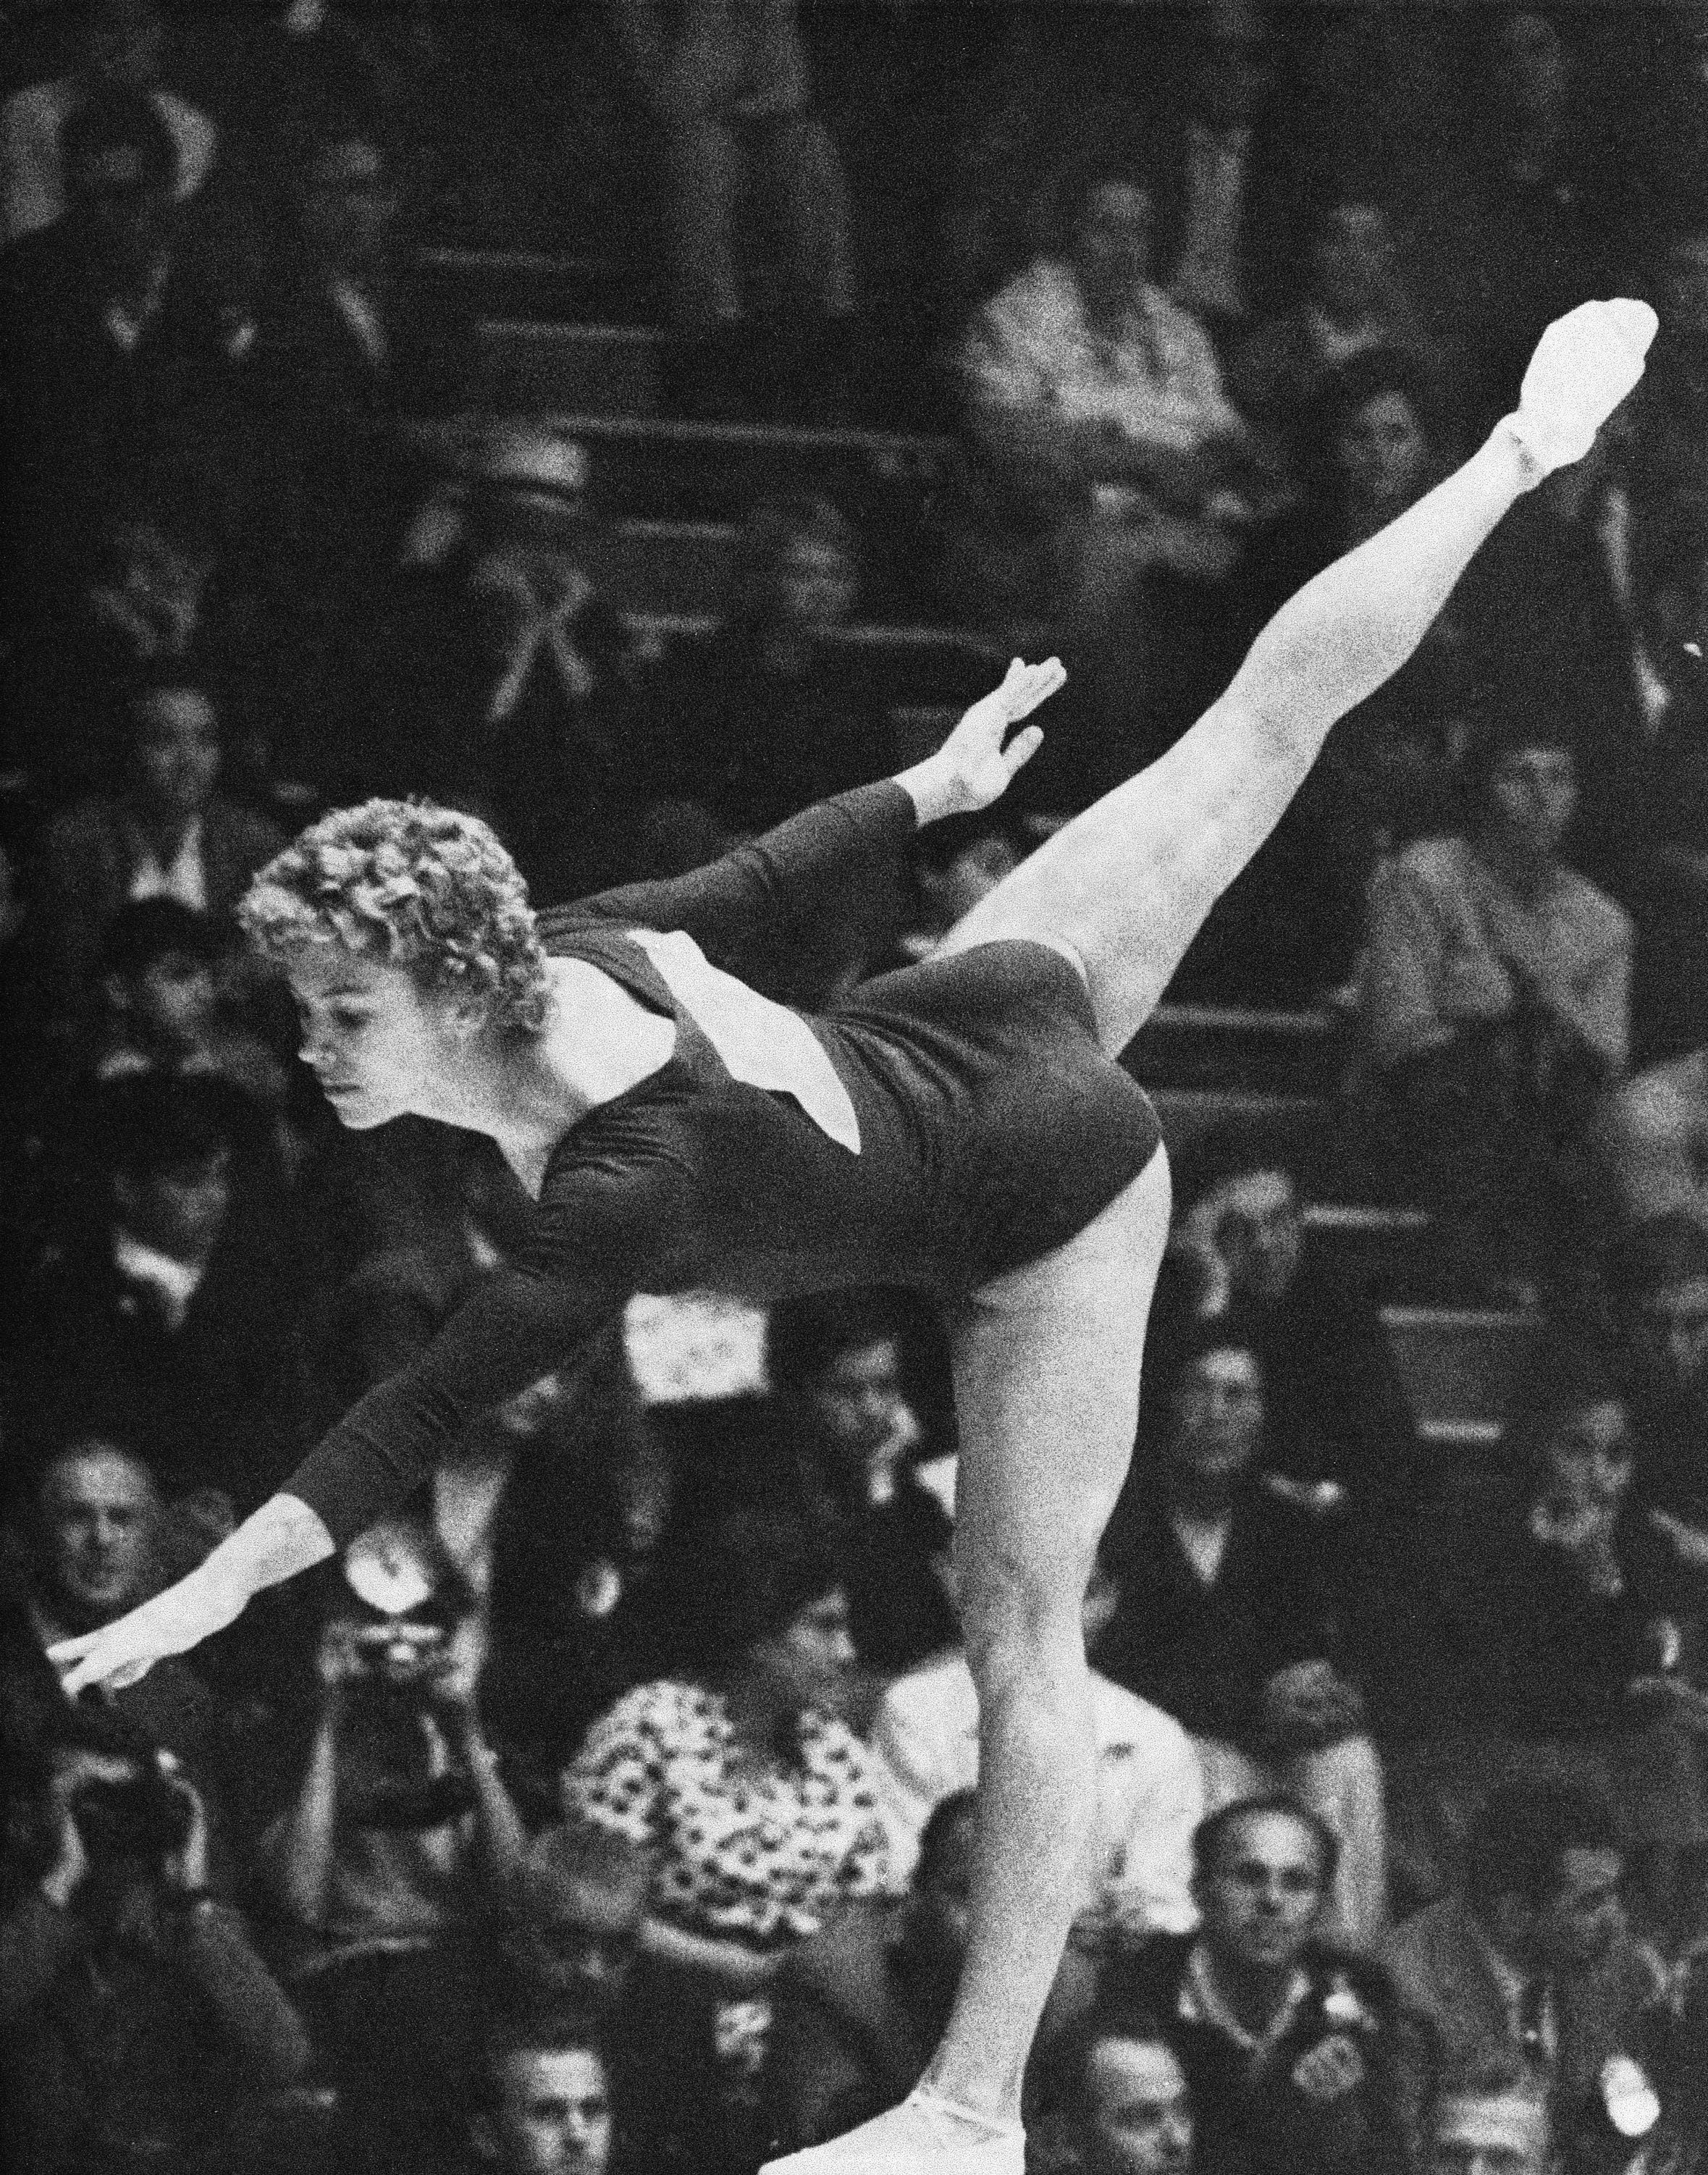 Larisa Latynina of Russia during her performance on the beam at the final of the woman's gymnastics held Sept. 9, 1960 at Rome's Terme Di Caracalla. She won second place in this event. (AP)